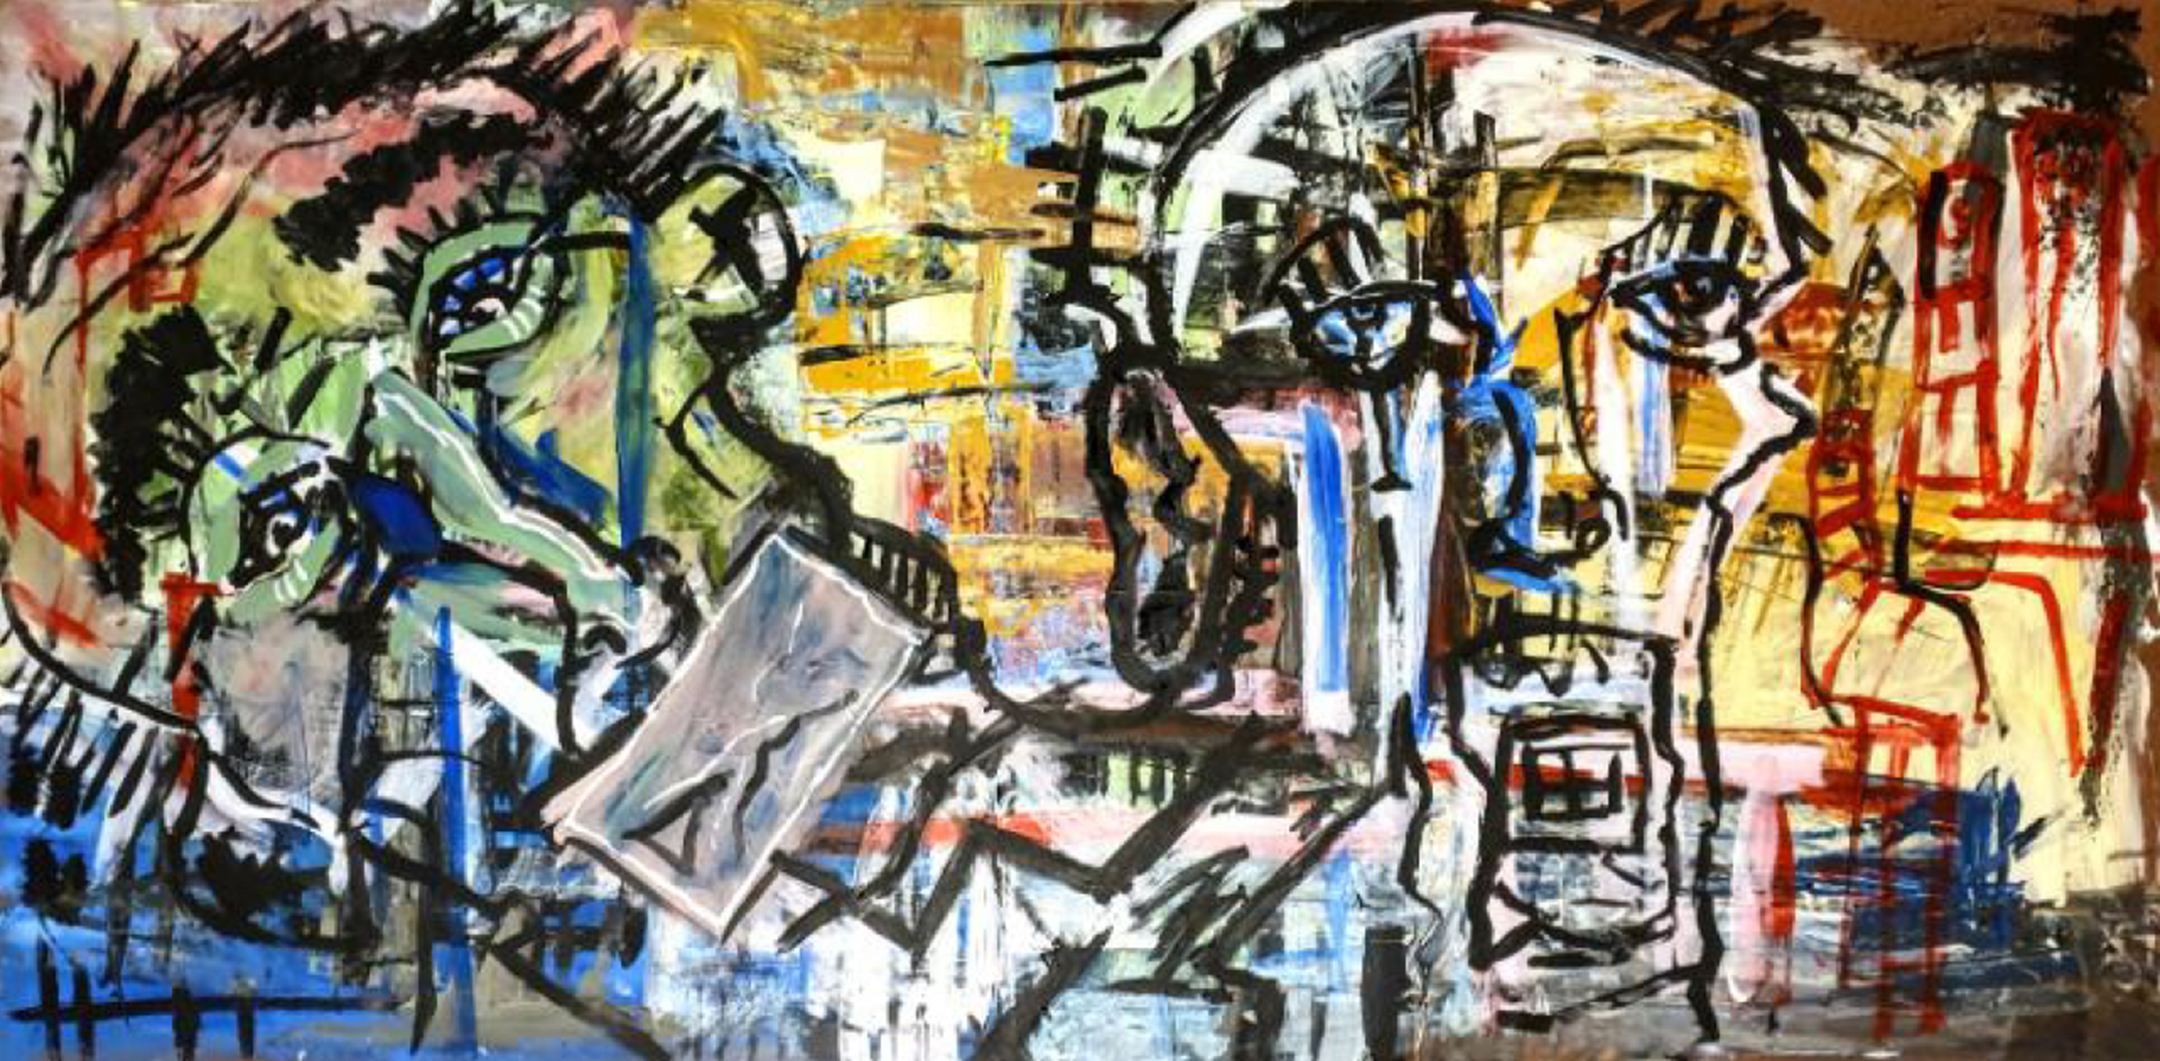 Horizontal artwork of abstract human figures and large abstract heads, in black, white, red, and yellow